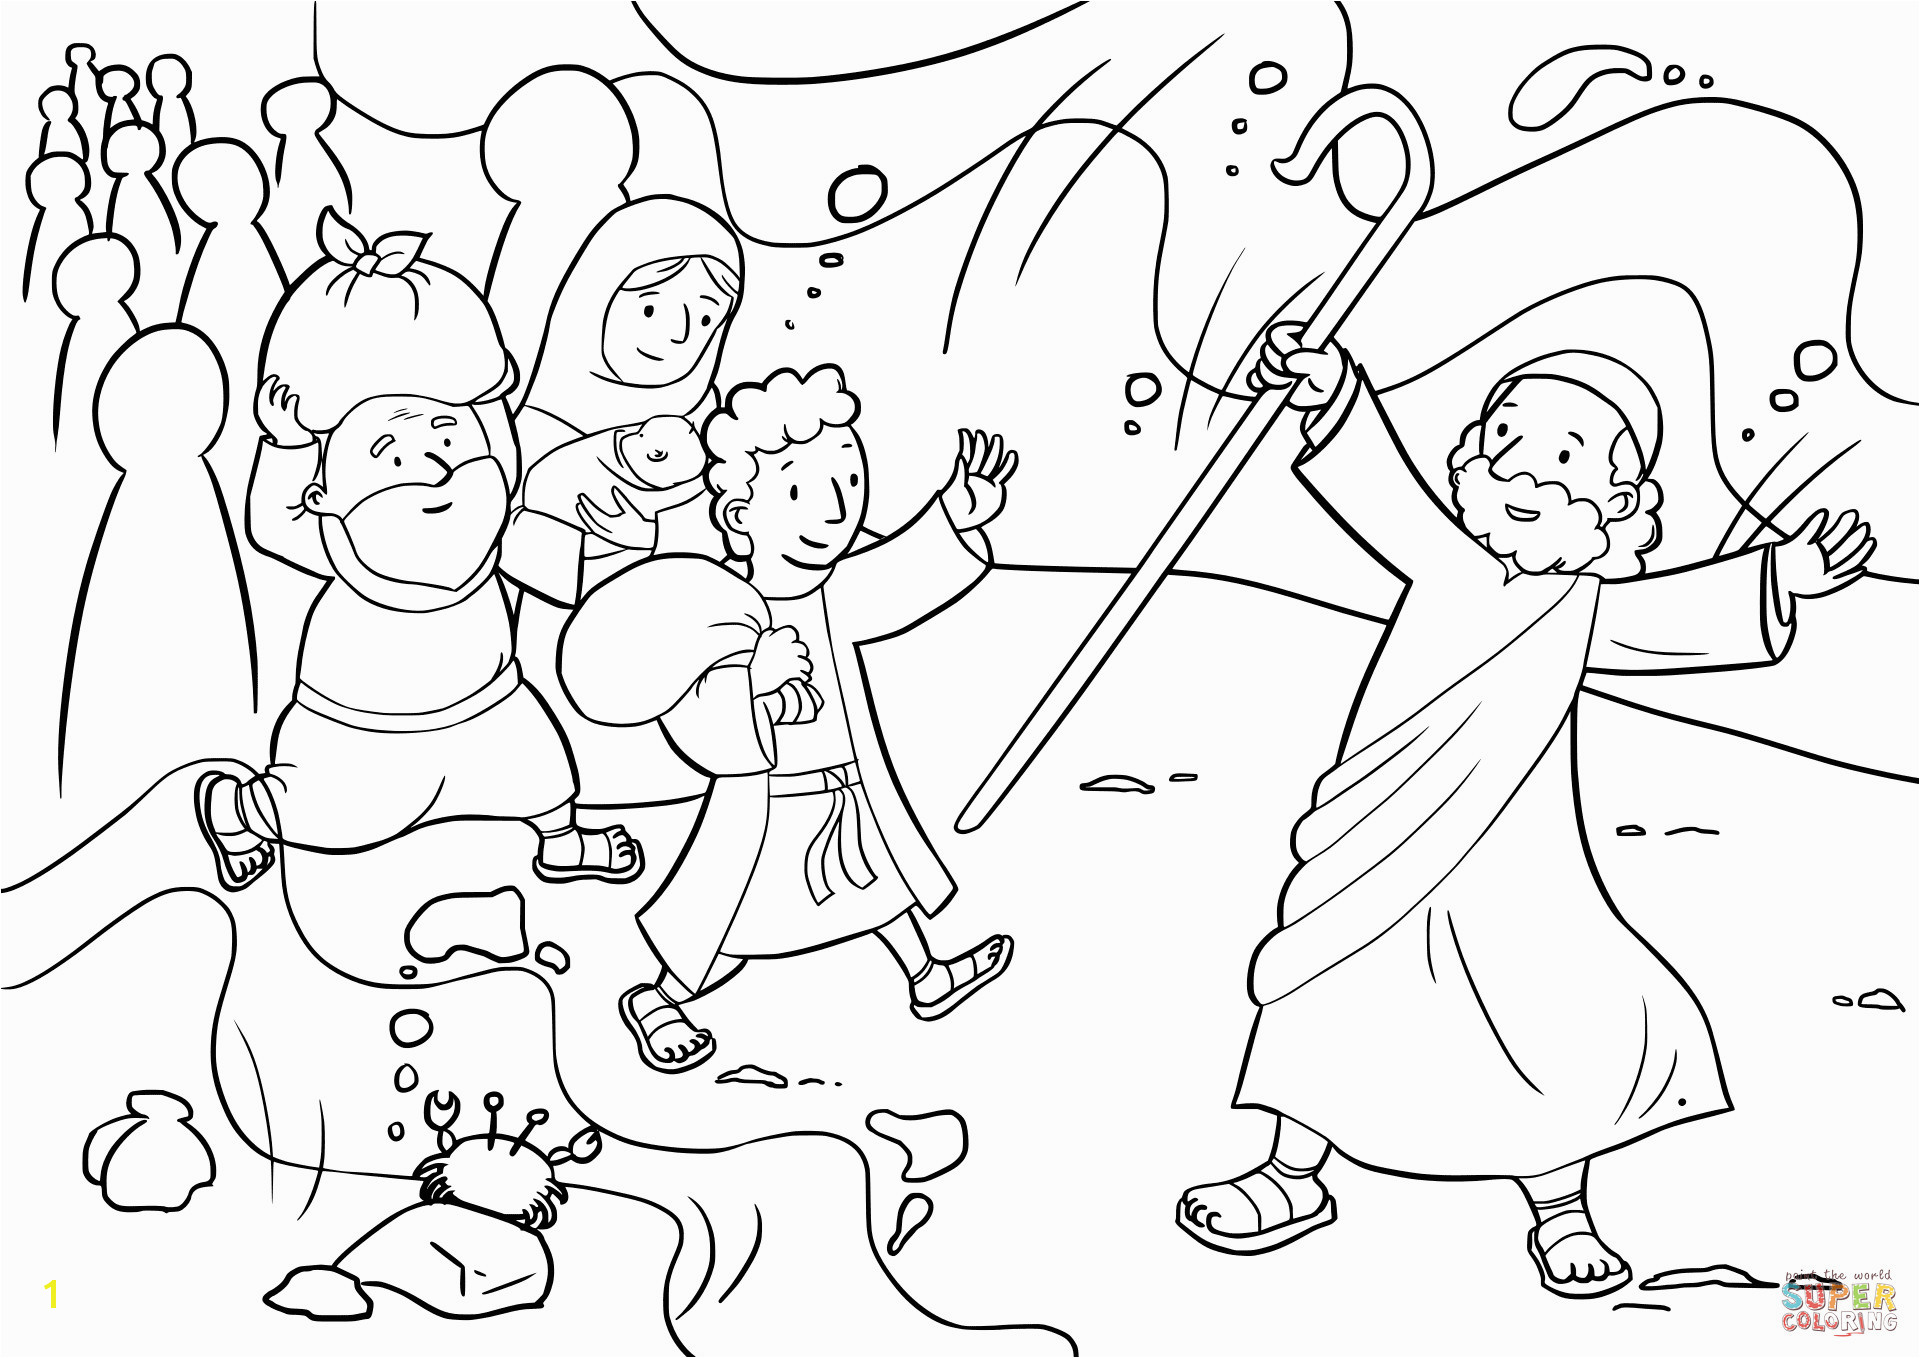 Printable Coloring Pages Of Moses Parting The Red Sea